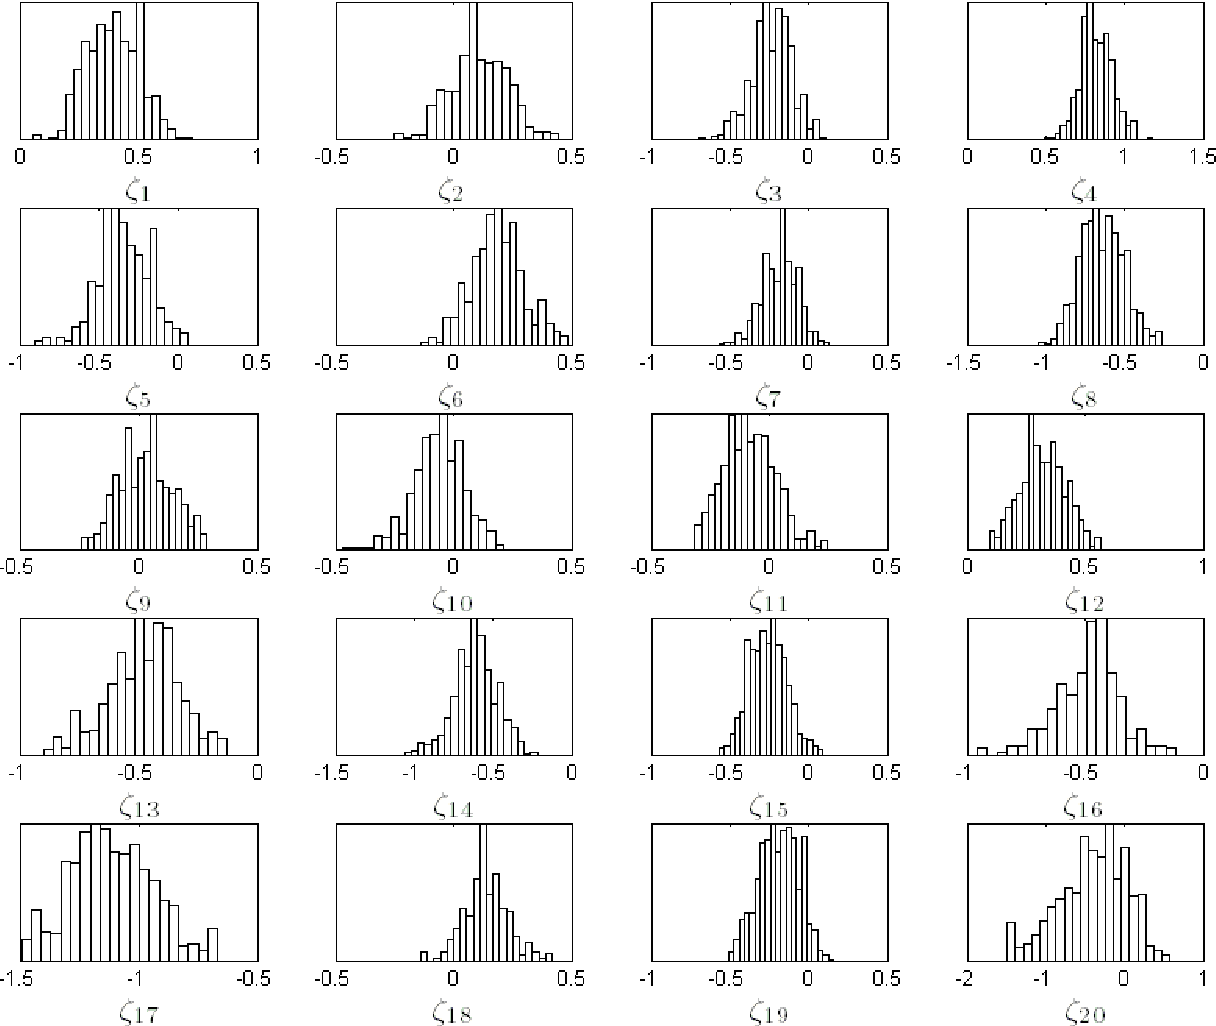 Figure 17-16: Posterior distributions for the 20 annual recruitment anomalies, representing anomalies in 1998 through 2008.